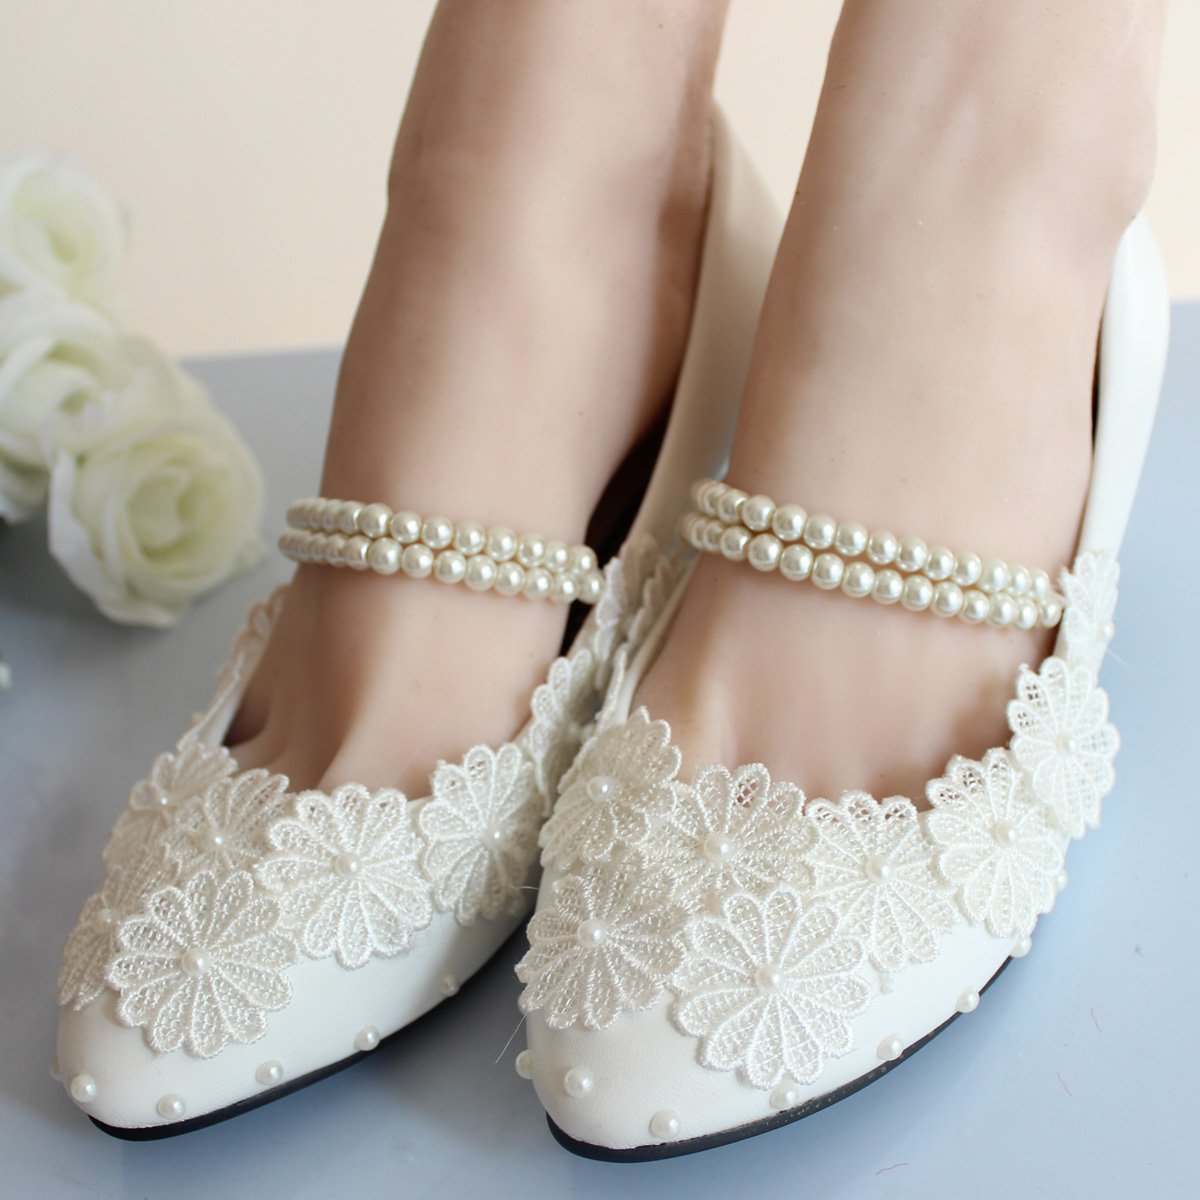 Low Heel White Lace Wedding Shoes Bridal Moccasins Footwear Women Flats Shoes Ballerina Ballet